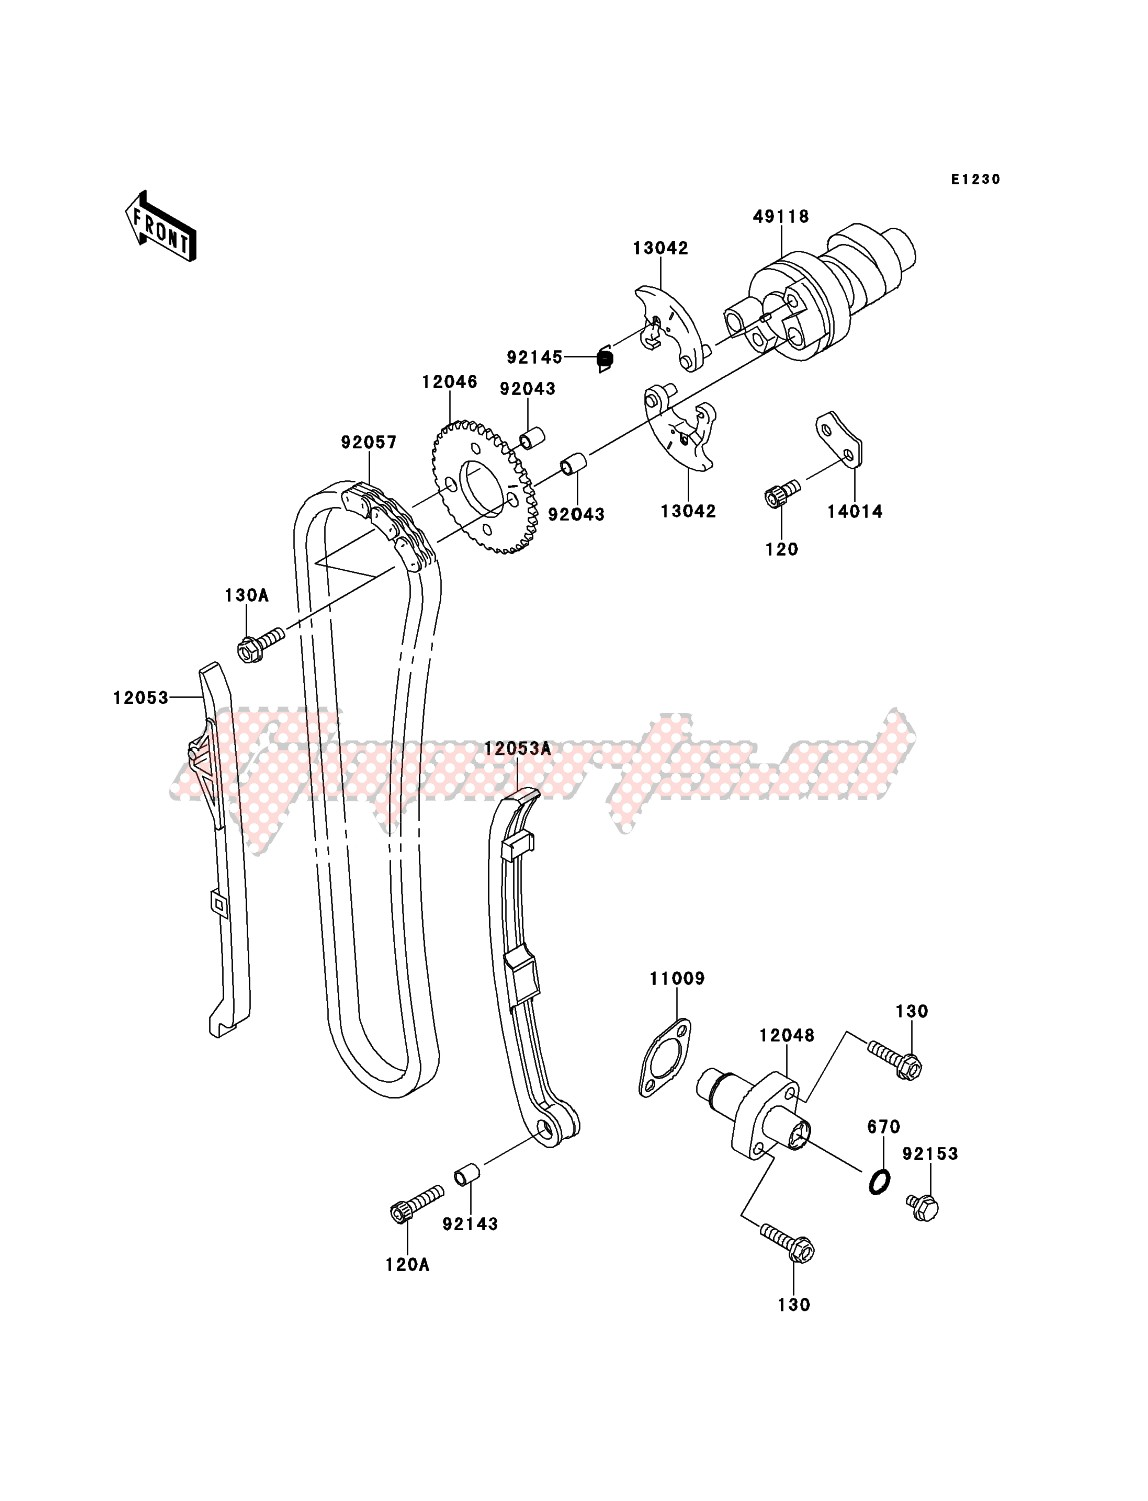 Engine-Camshaft(s)/Tensioner